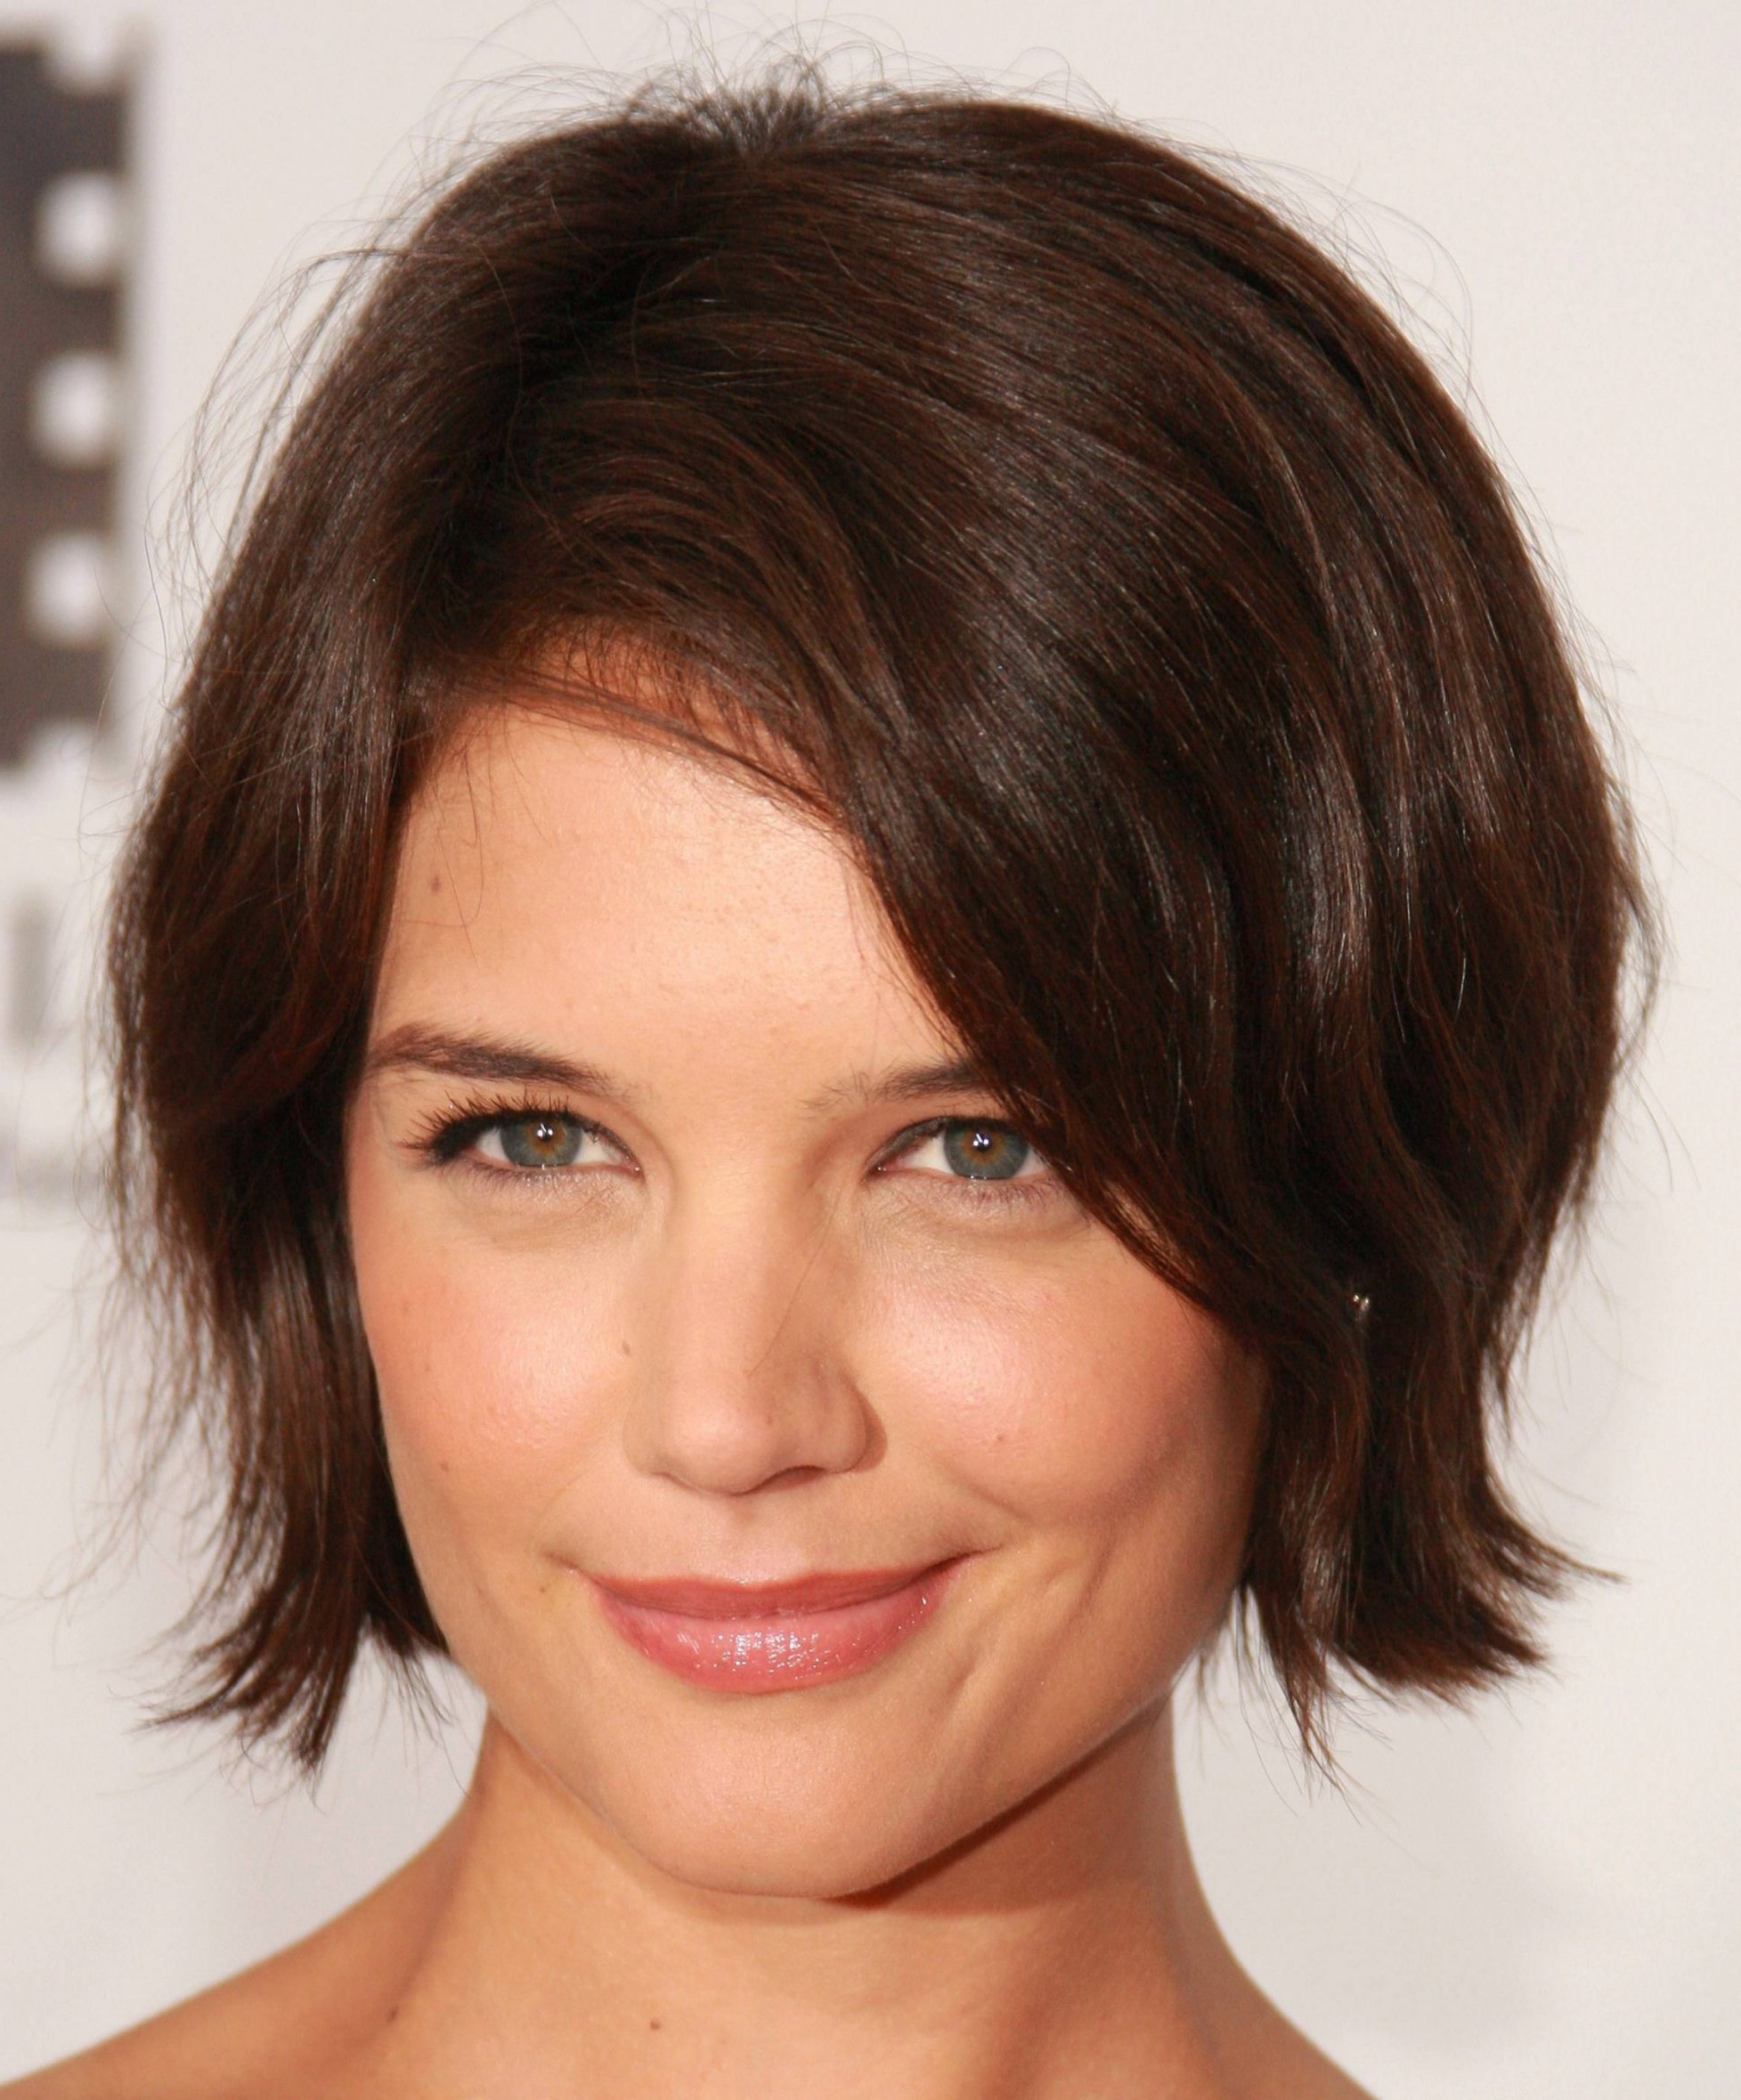 20 Inspirations of Medium Hairstyles For Round Fat Faces